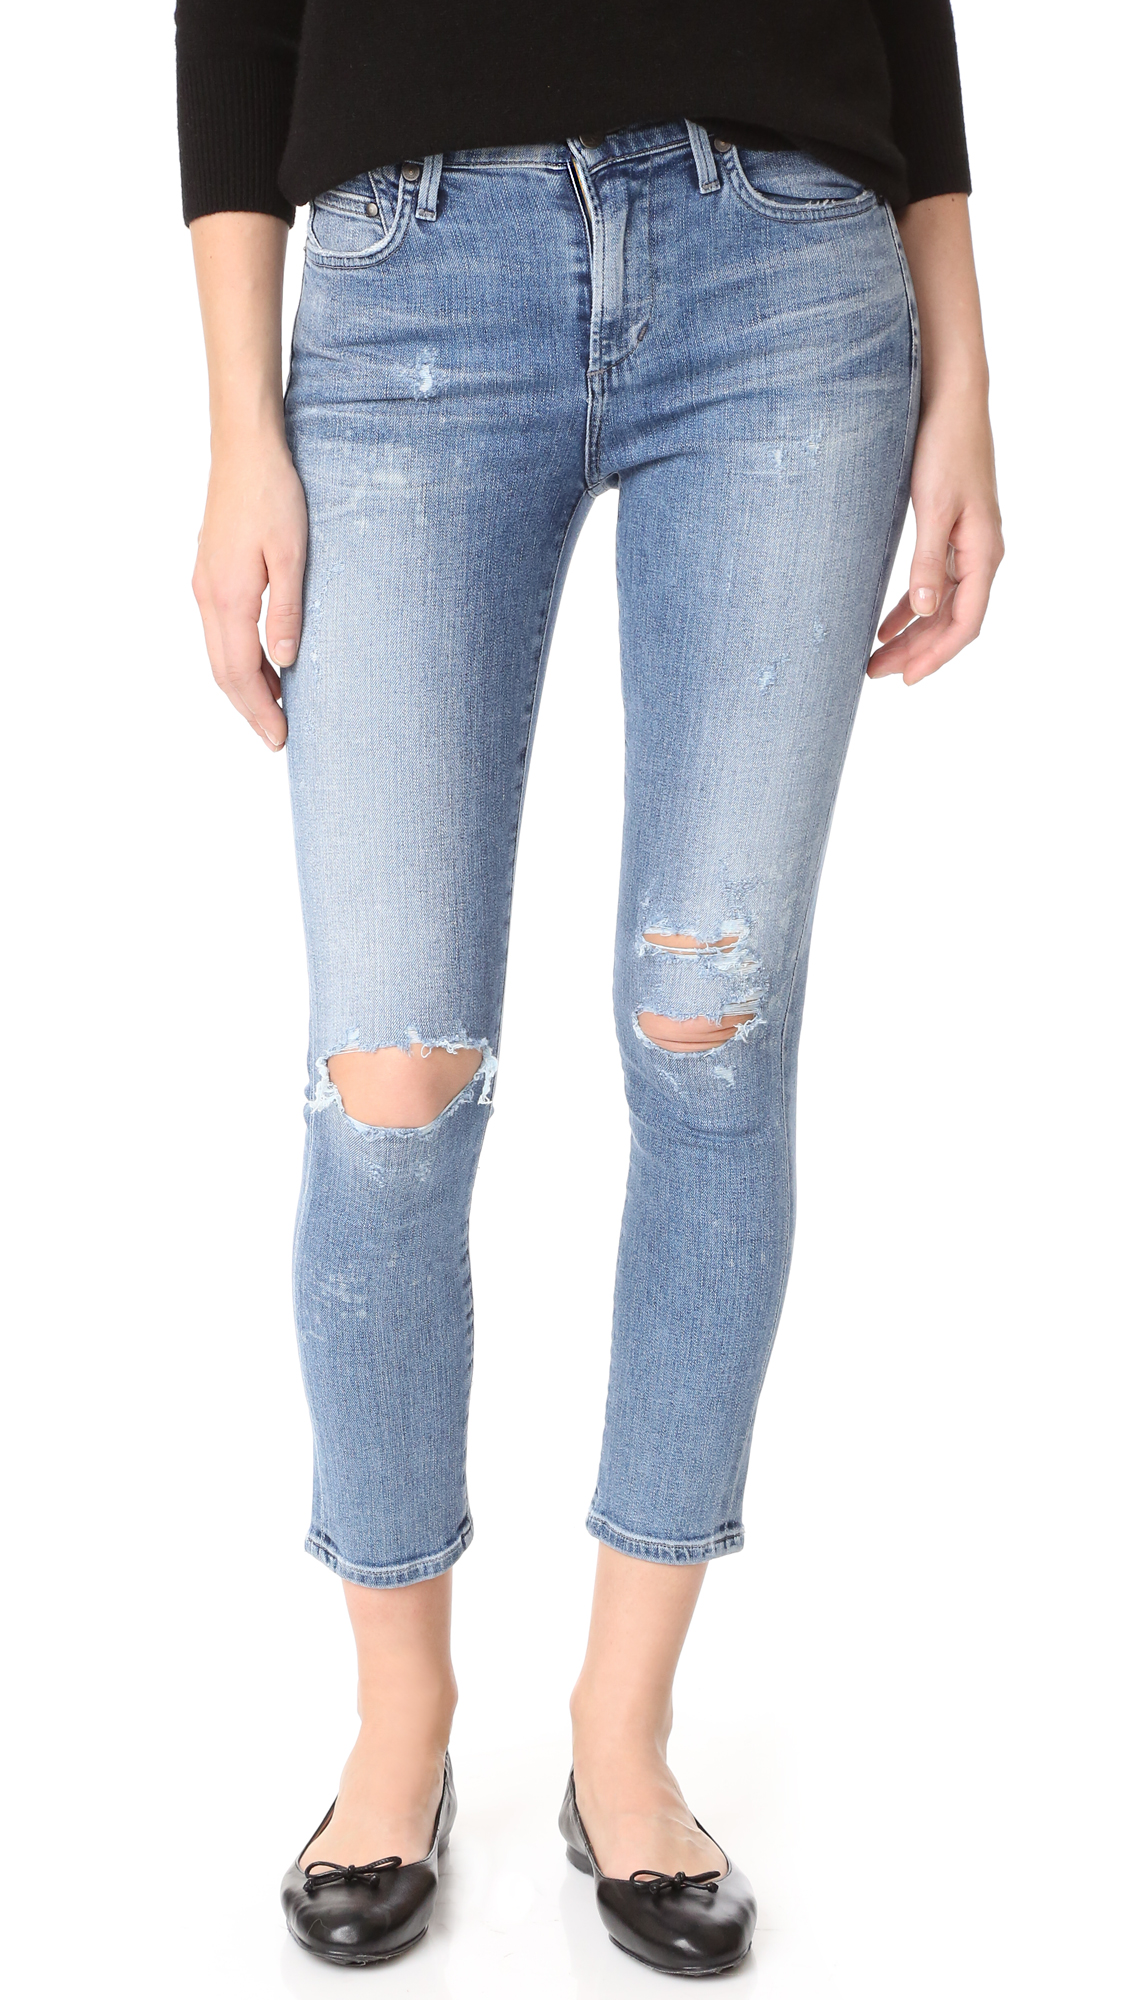 Citizens of Humanity Crop Rocket High Rise Jeans - Distressed Fizzle